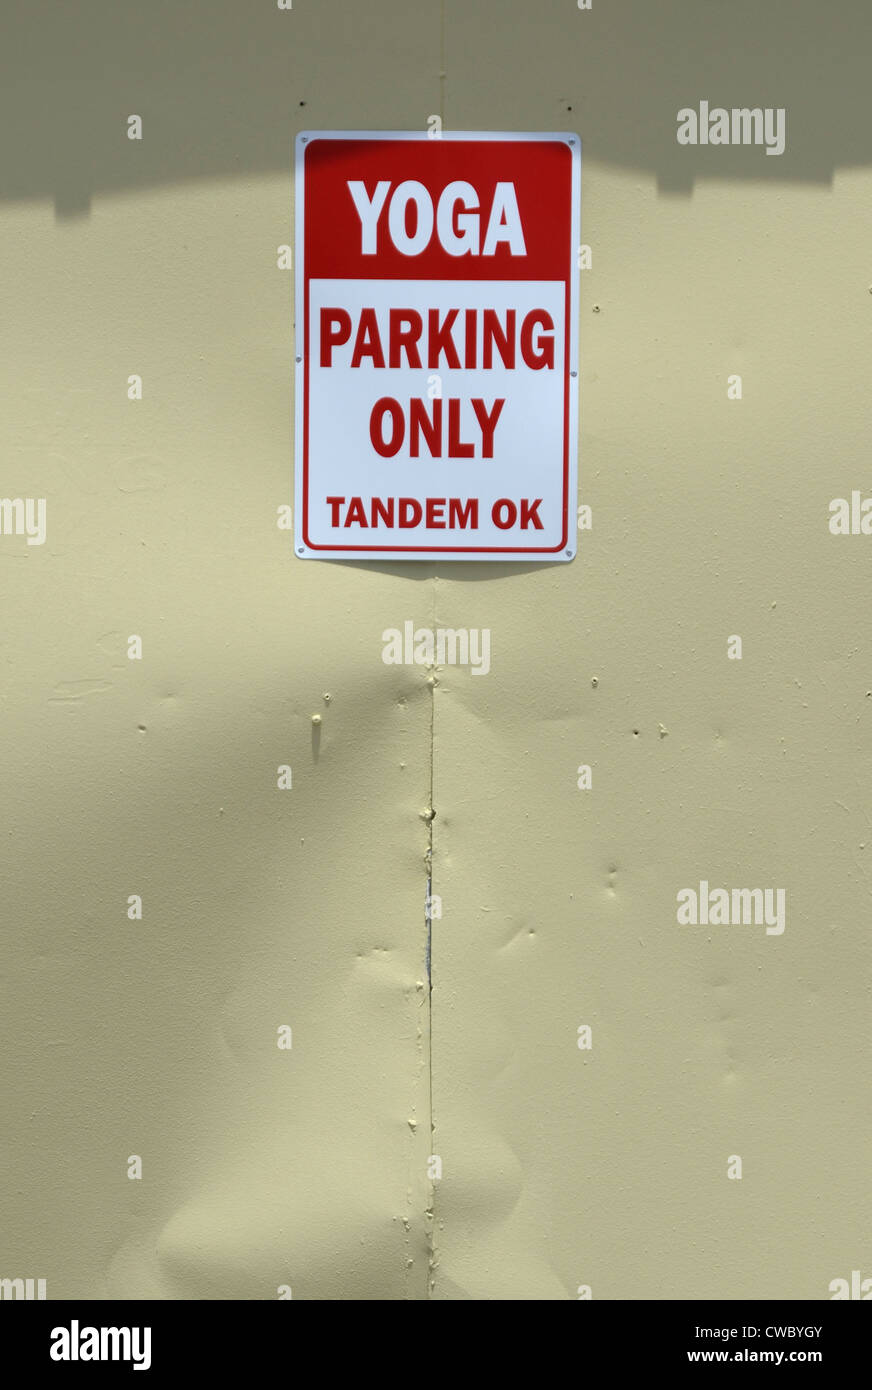 Yoga Studio Parking SIgnStock Photo